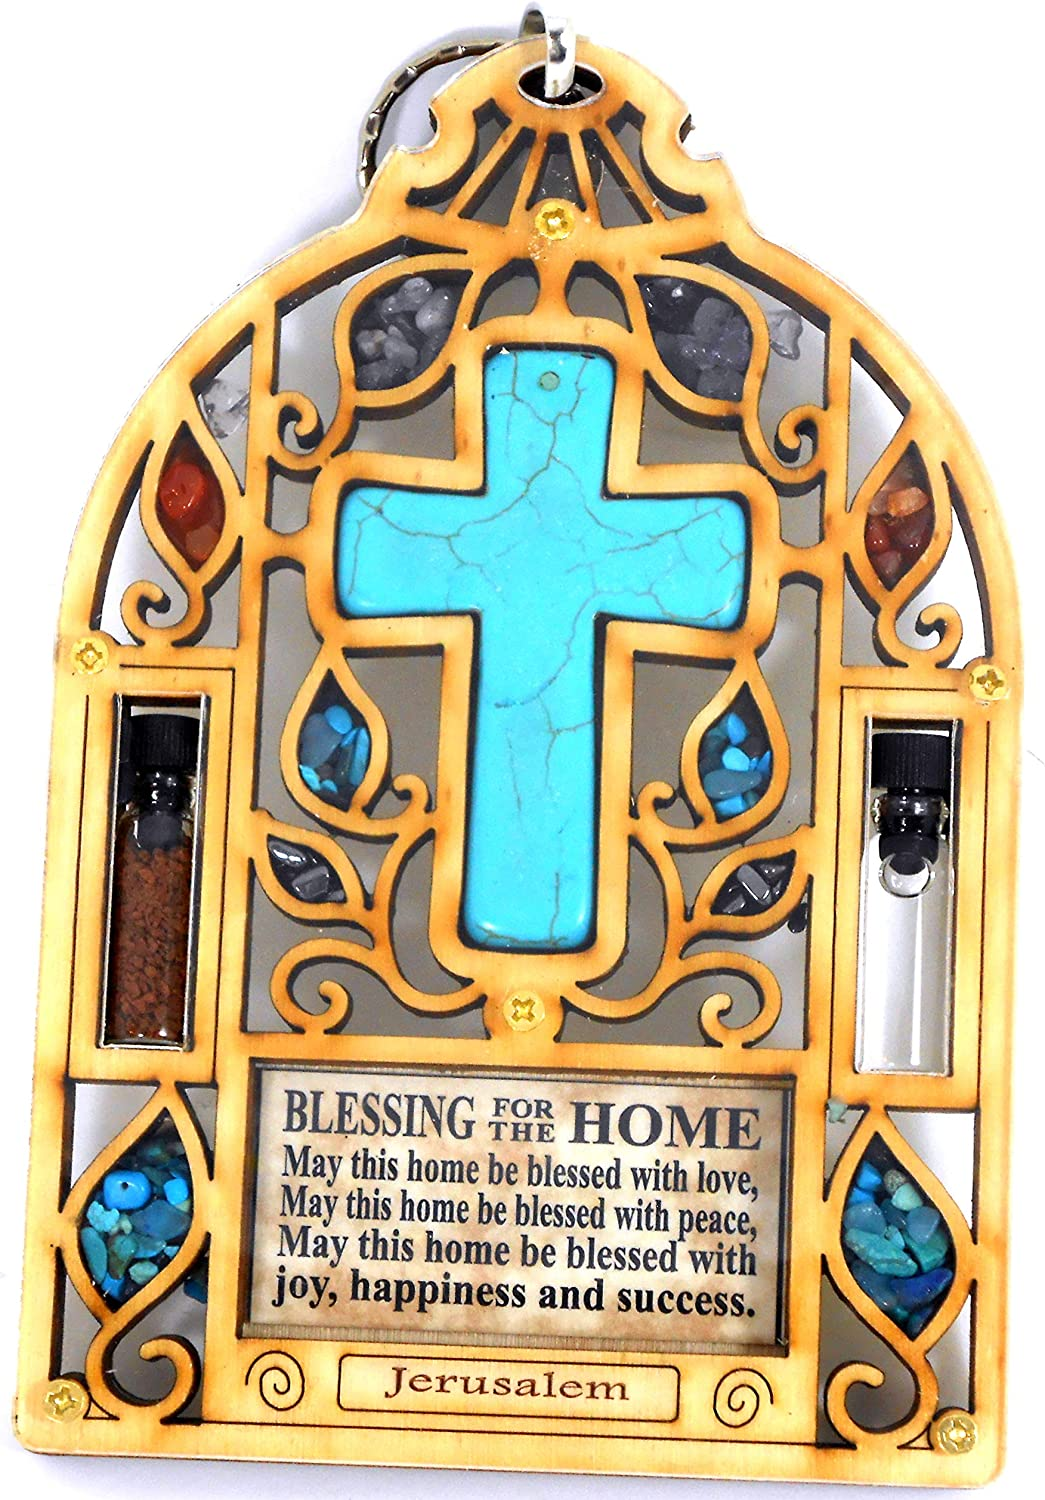 Bell Shape Wood Turquoise Cross Wall Decor Wooden Hanging Housewarming Orthodox Greek Christian Religious Plaque Charm Icon Gift Holy land Water Earth Hollow series